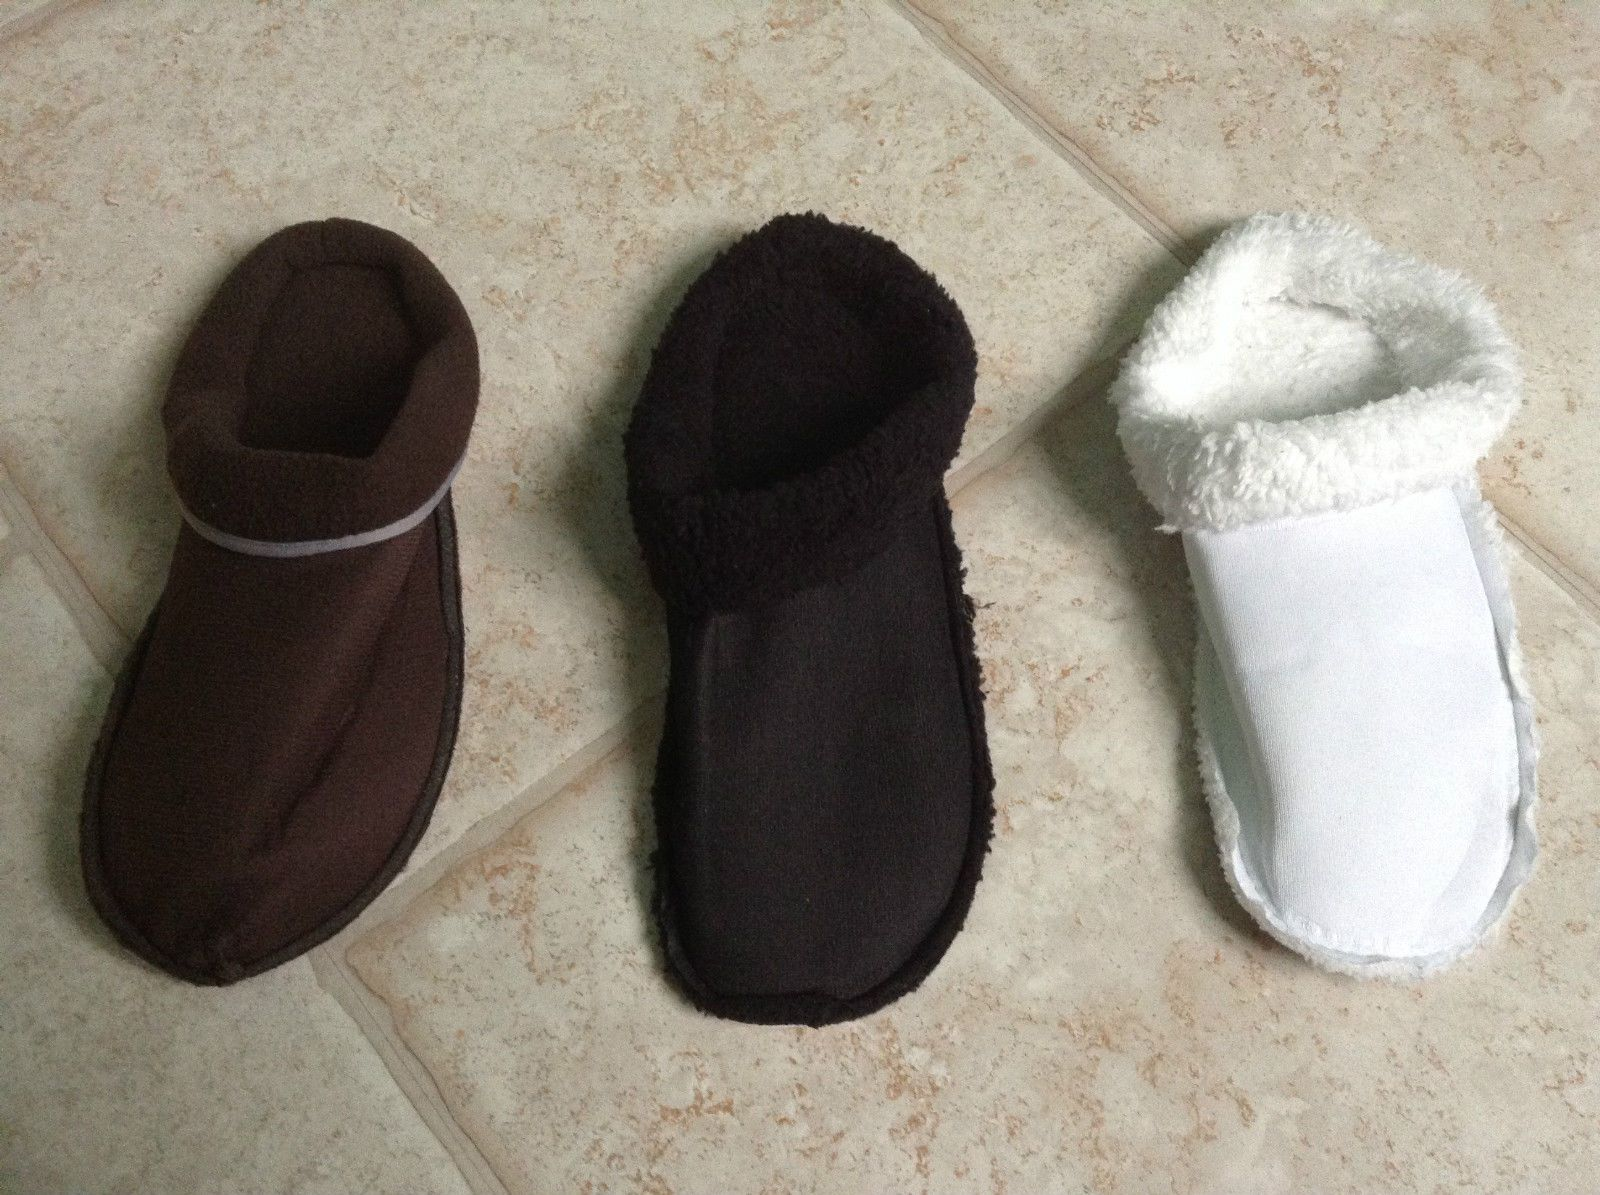 Replacement Liners Insoles Inserts For Crocs Slippers Shoes Clogs White Warm Fur